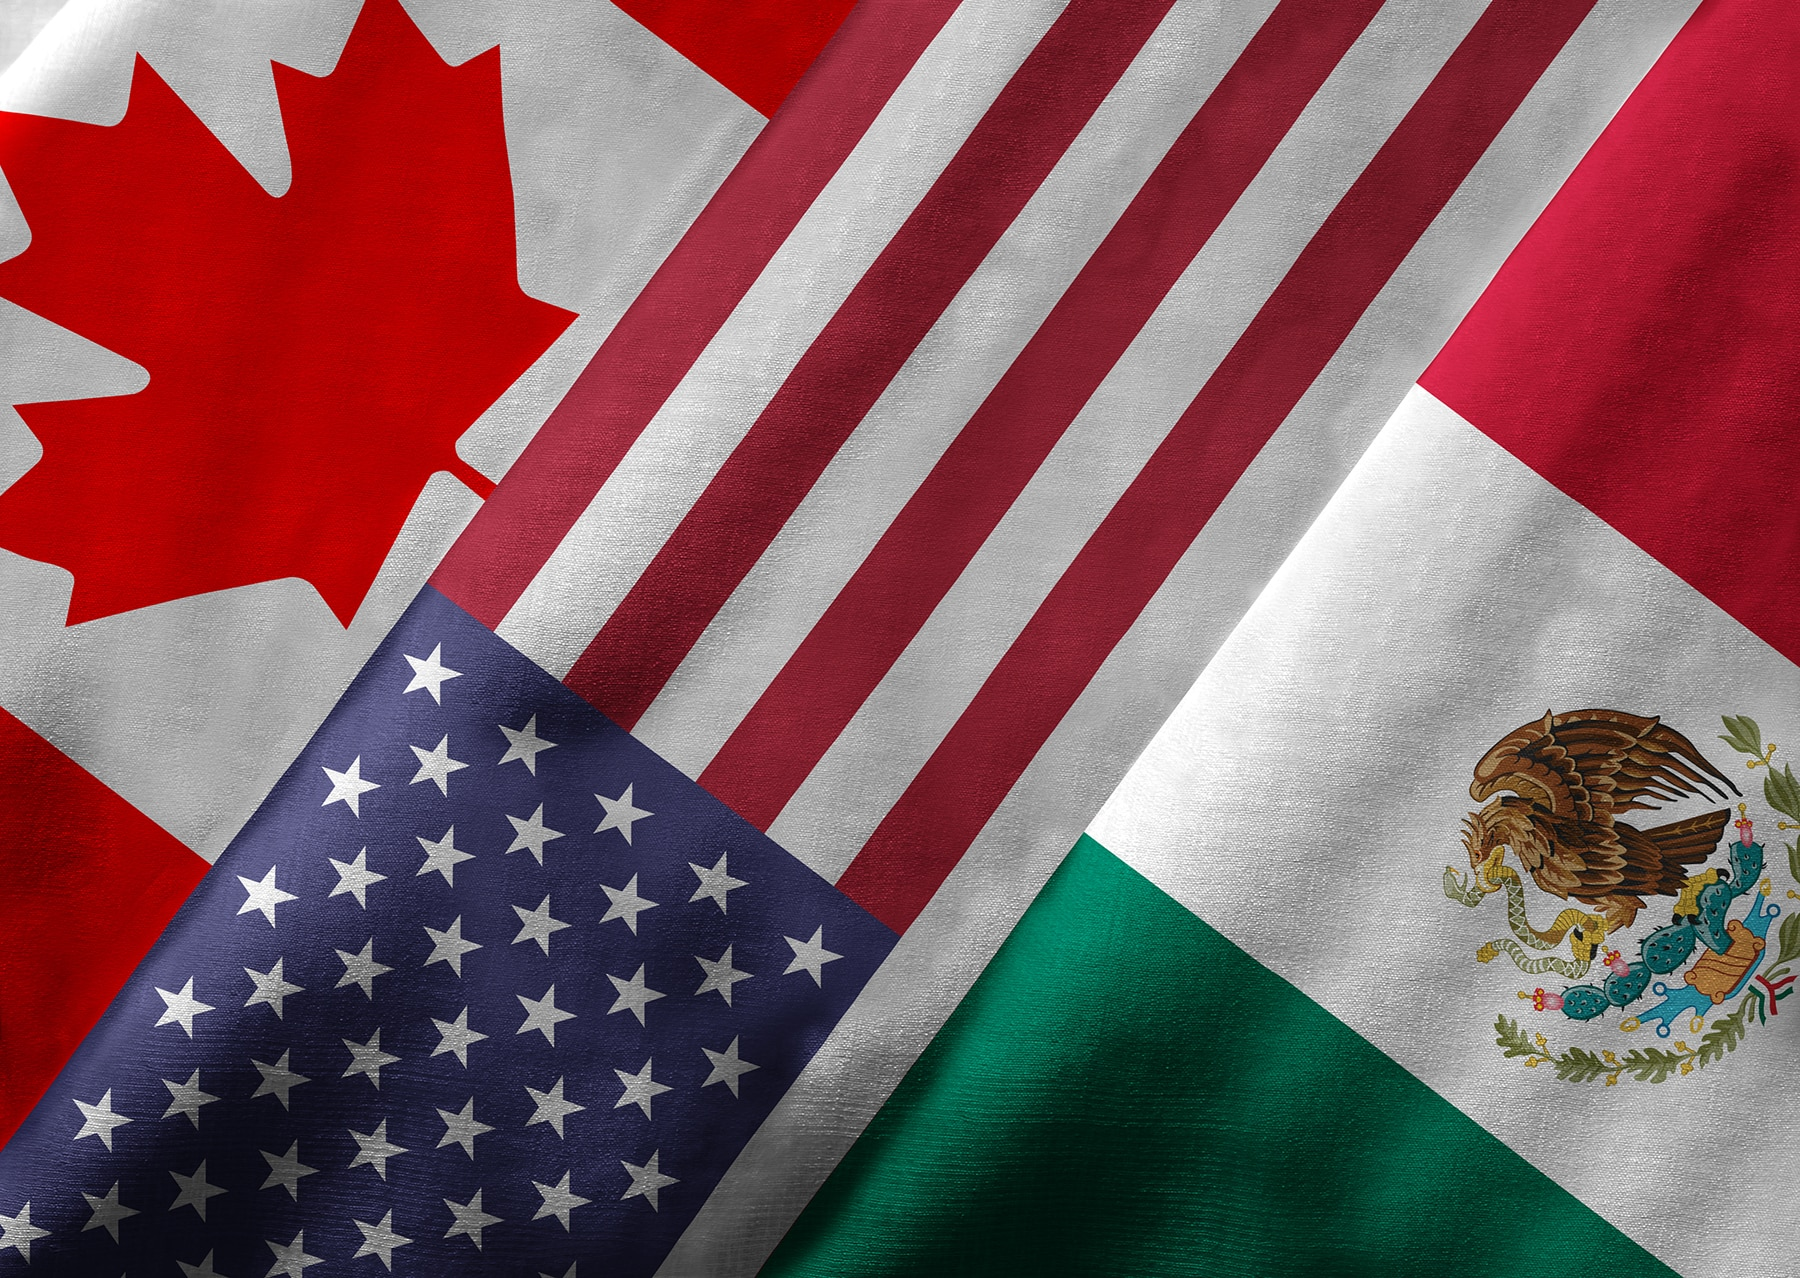 NAFTA talks not tackling deal's fundamental flaws